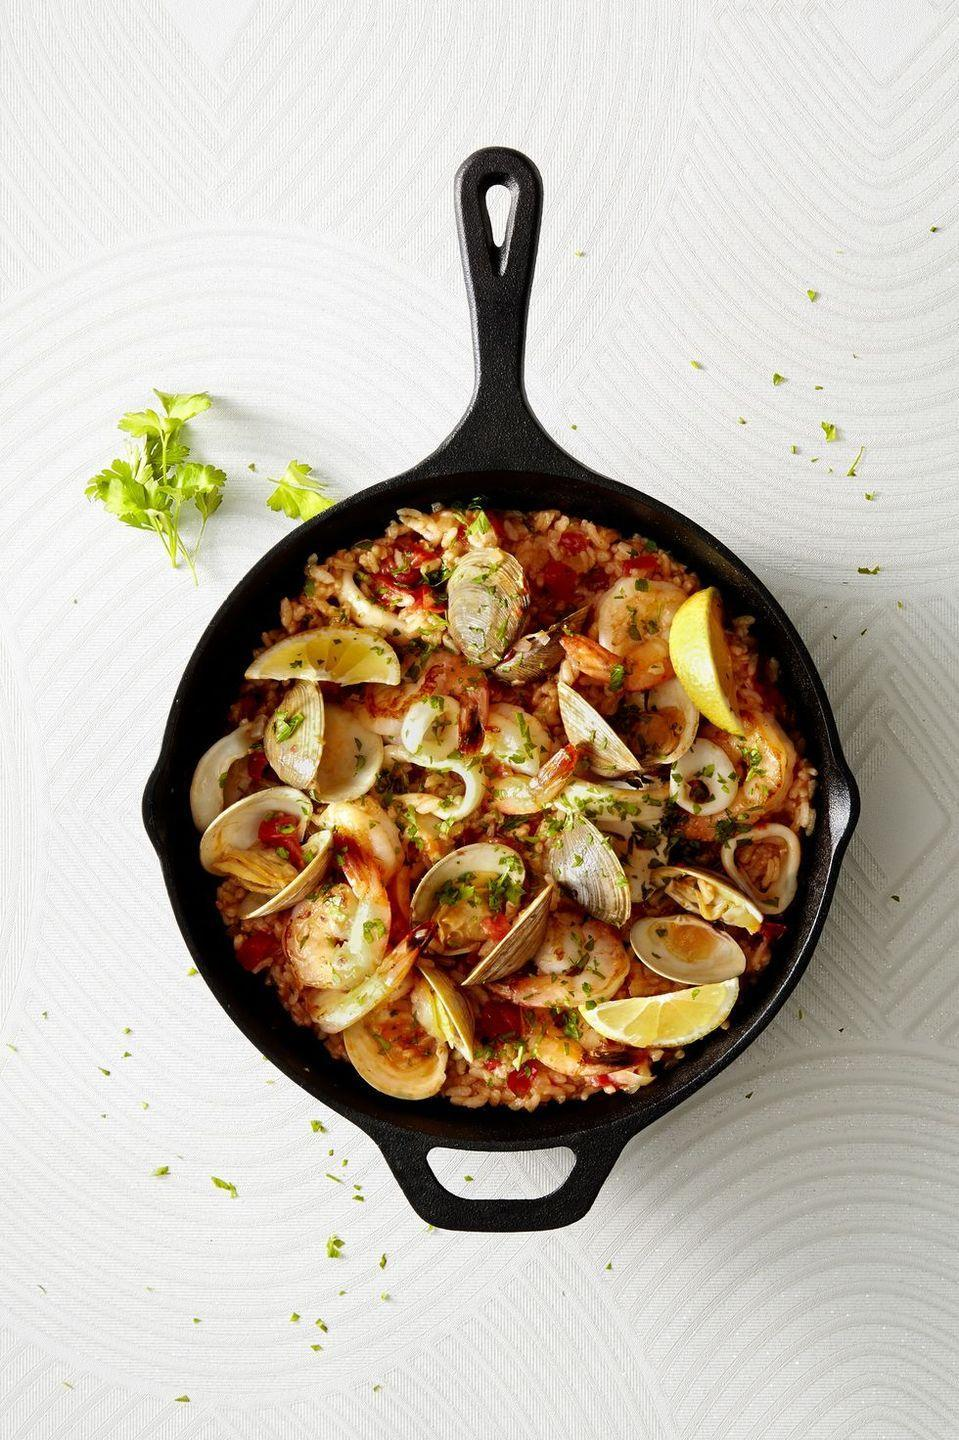 """<p>With clams, shrimp and squid, this savory seafood is much easier to make than it looks.</p><p><em><a href=""""https://www.goodhousekeeping.com/food-recipes/a42820/easiest-ever-paella-recipe/"""" rel=""""nofollow noopener"""" target=""""_blank"""" data-ylk=""""slk:Get the recipe for Easiest-Ever Paella »"""" class=""""link rapid-noclick-resp"""">Get the recipe for Easiest-Ever Paella »</a></em></p>"""